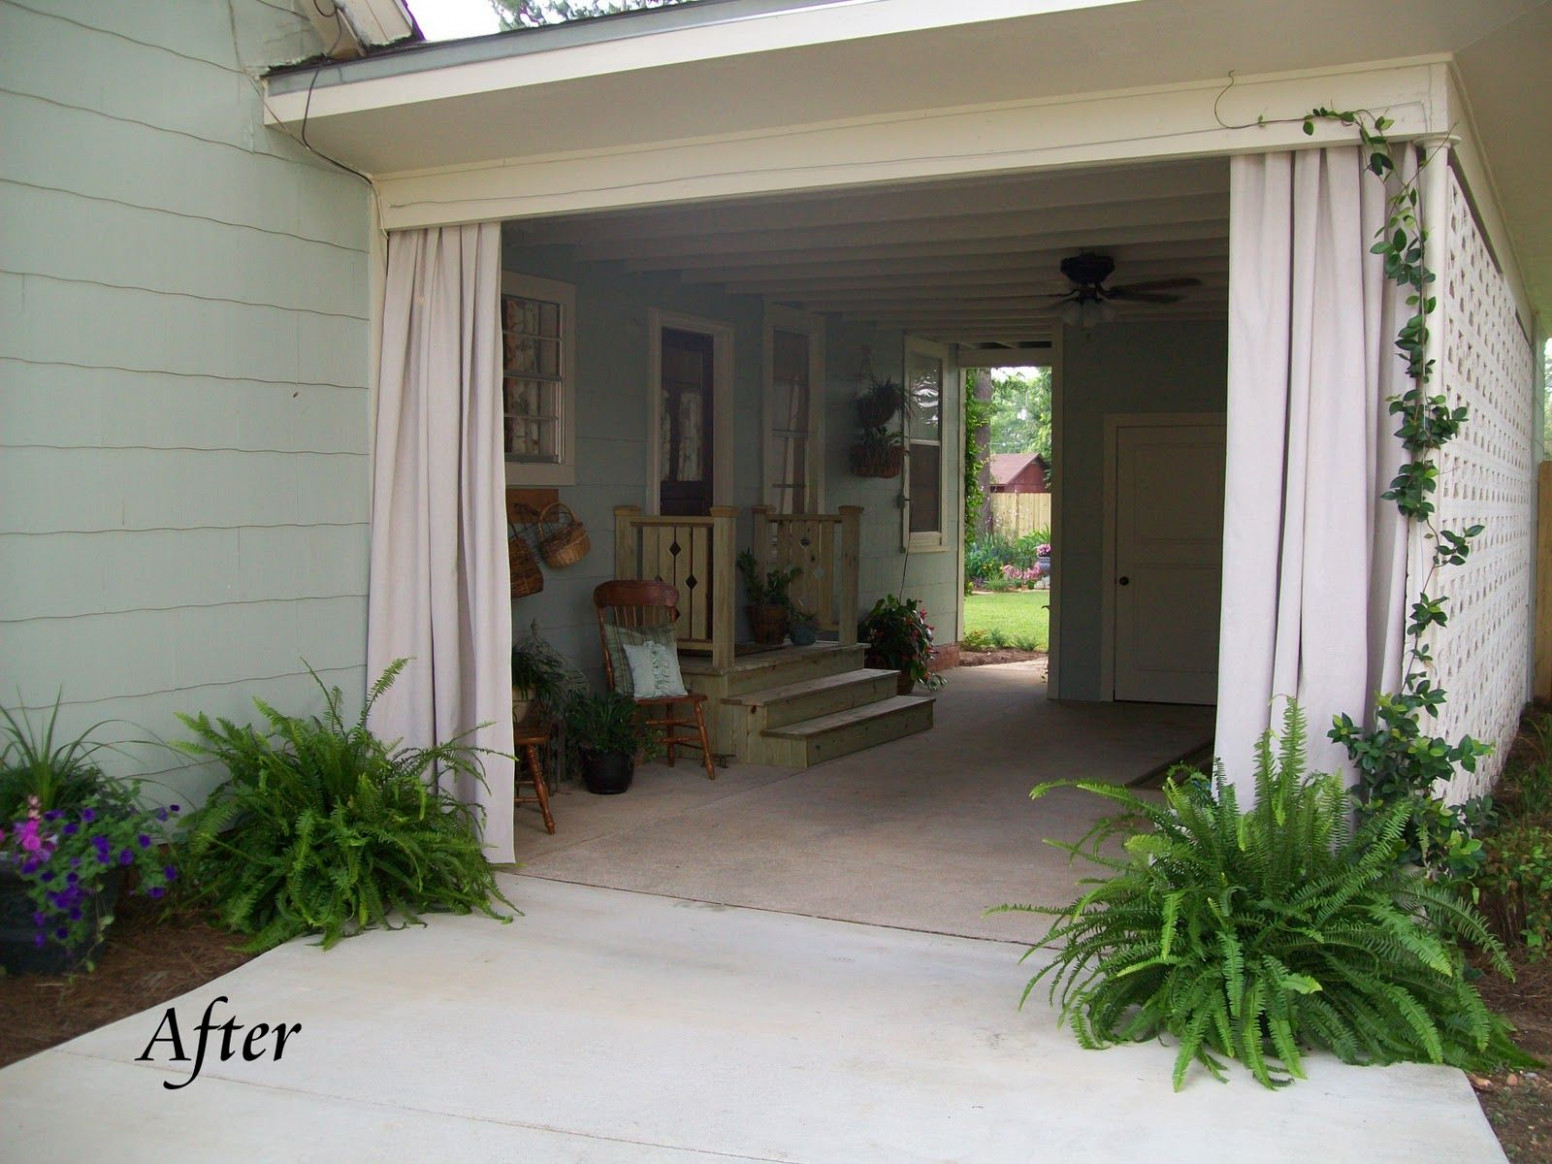 Clever Use Of Carport... Turned Breezy Patio! | Creative ..